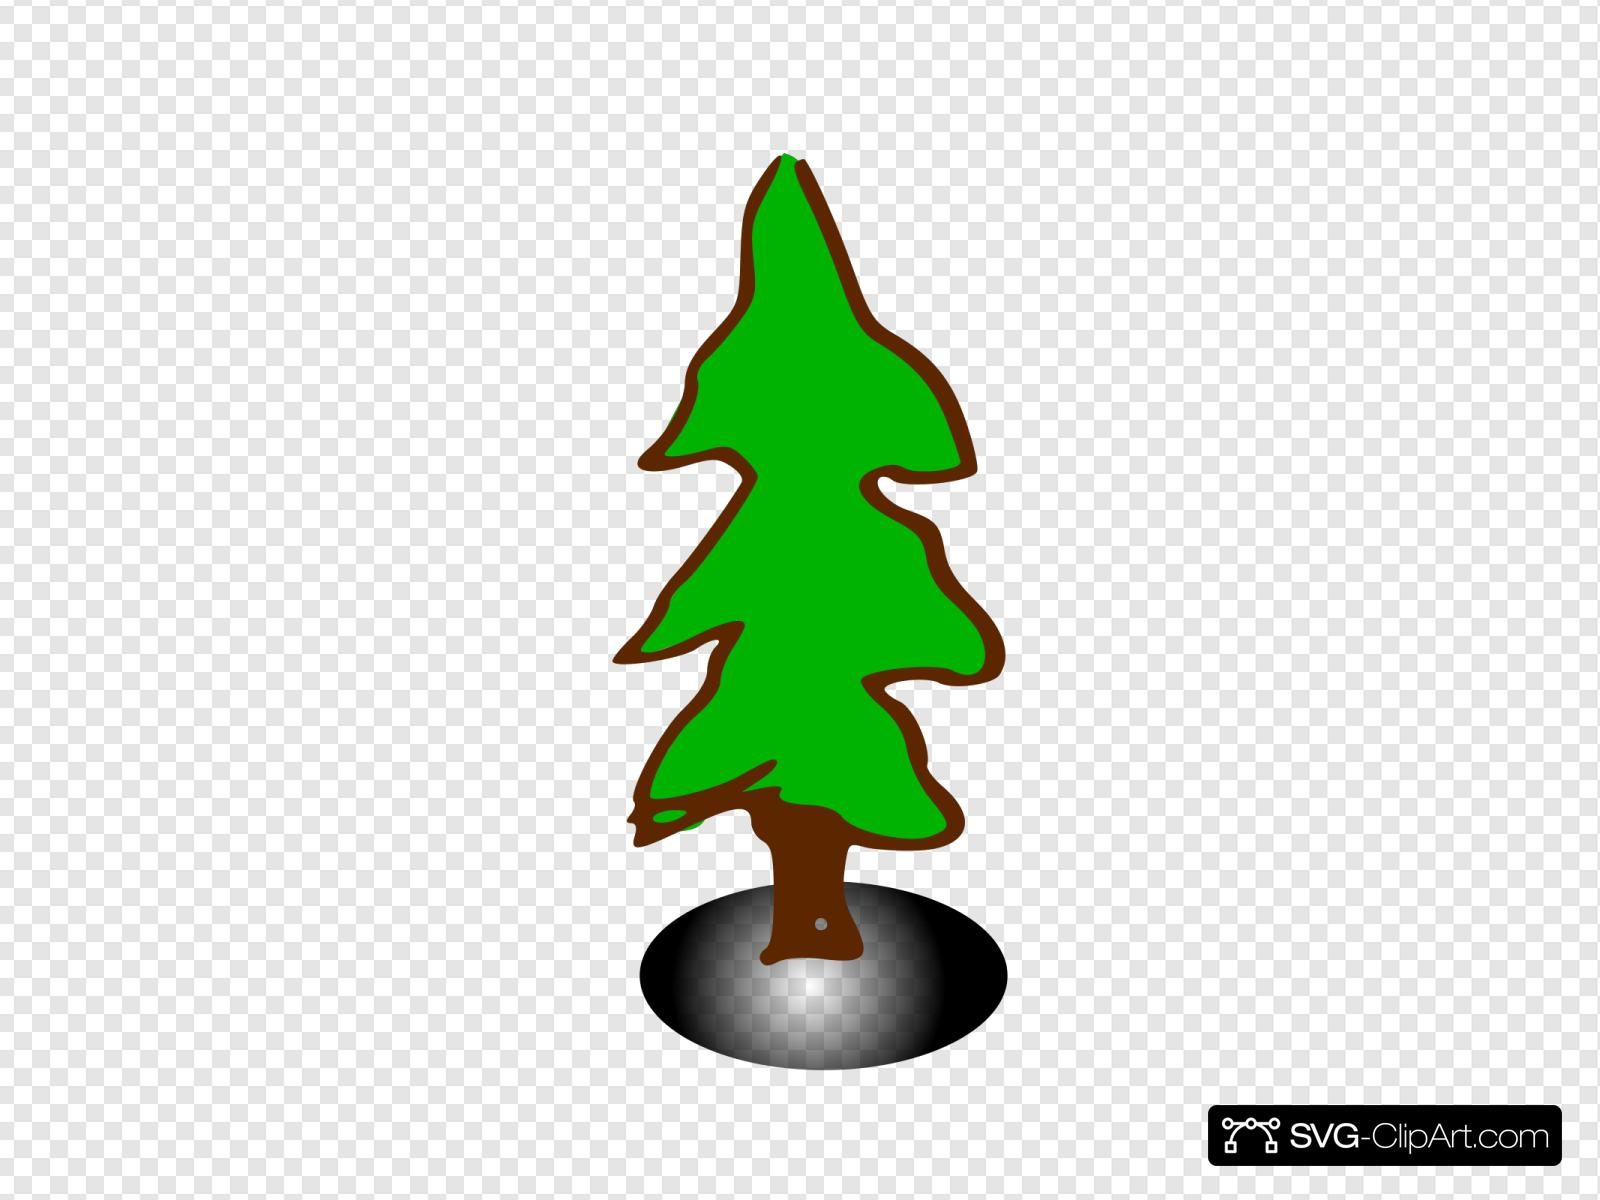 Bare Christmas Tree Svg.Tree Rpg Map Elements 5 Clip Art Icon And Svg Svg Clipart